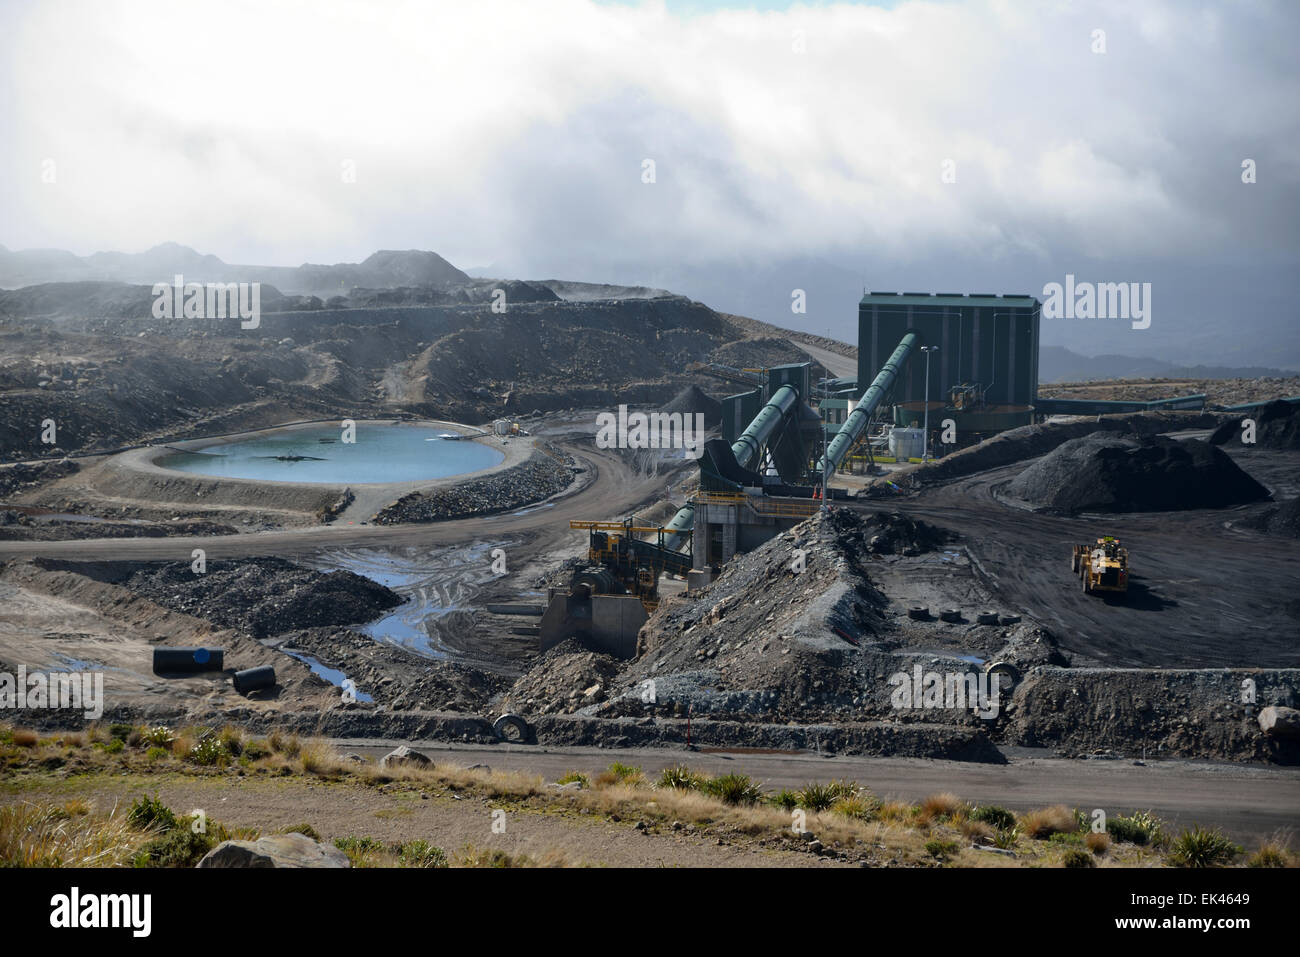 The coal washing and processing plant operates at Stockton Coal Mine near Westport, New Zealand Stock Photo